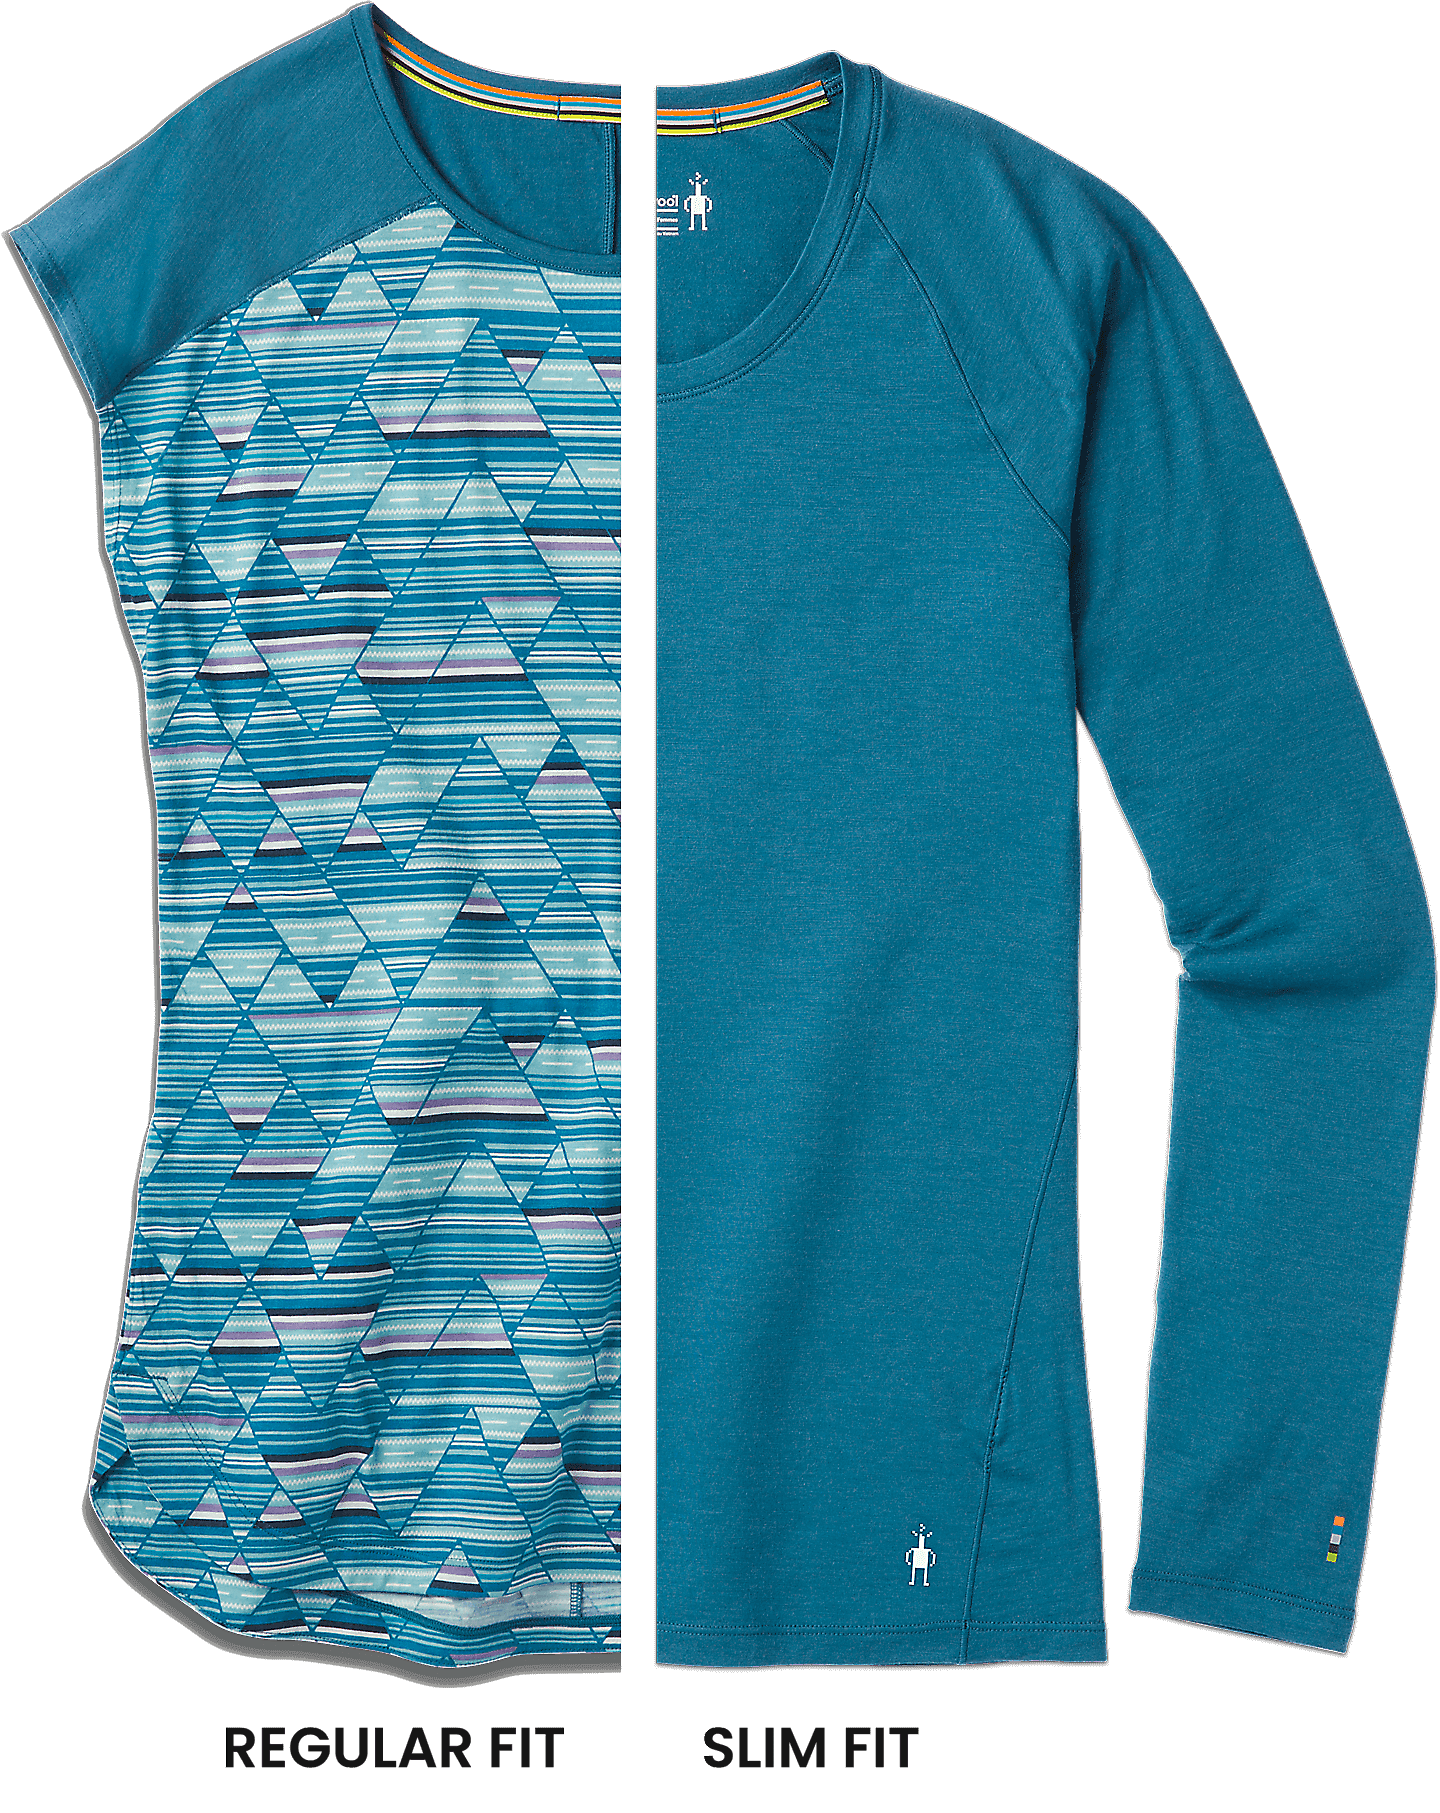 9175caa48 New Merino 150 Base Layer Clothing | Merino Core Spun Technology